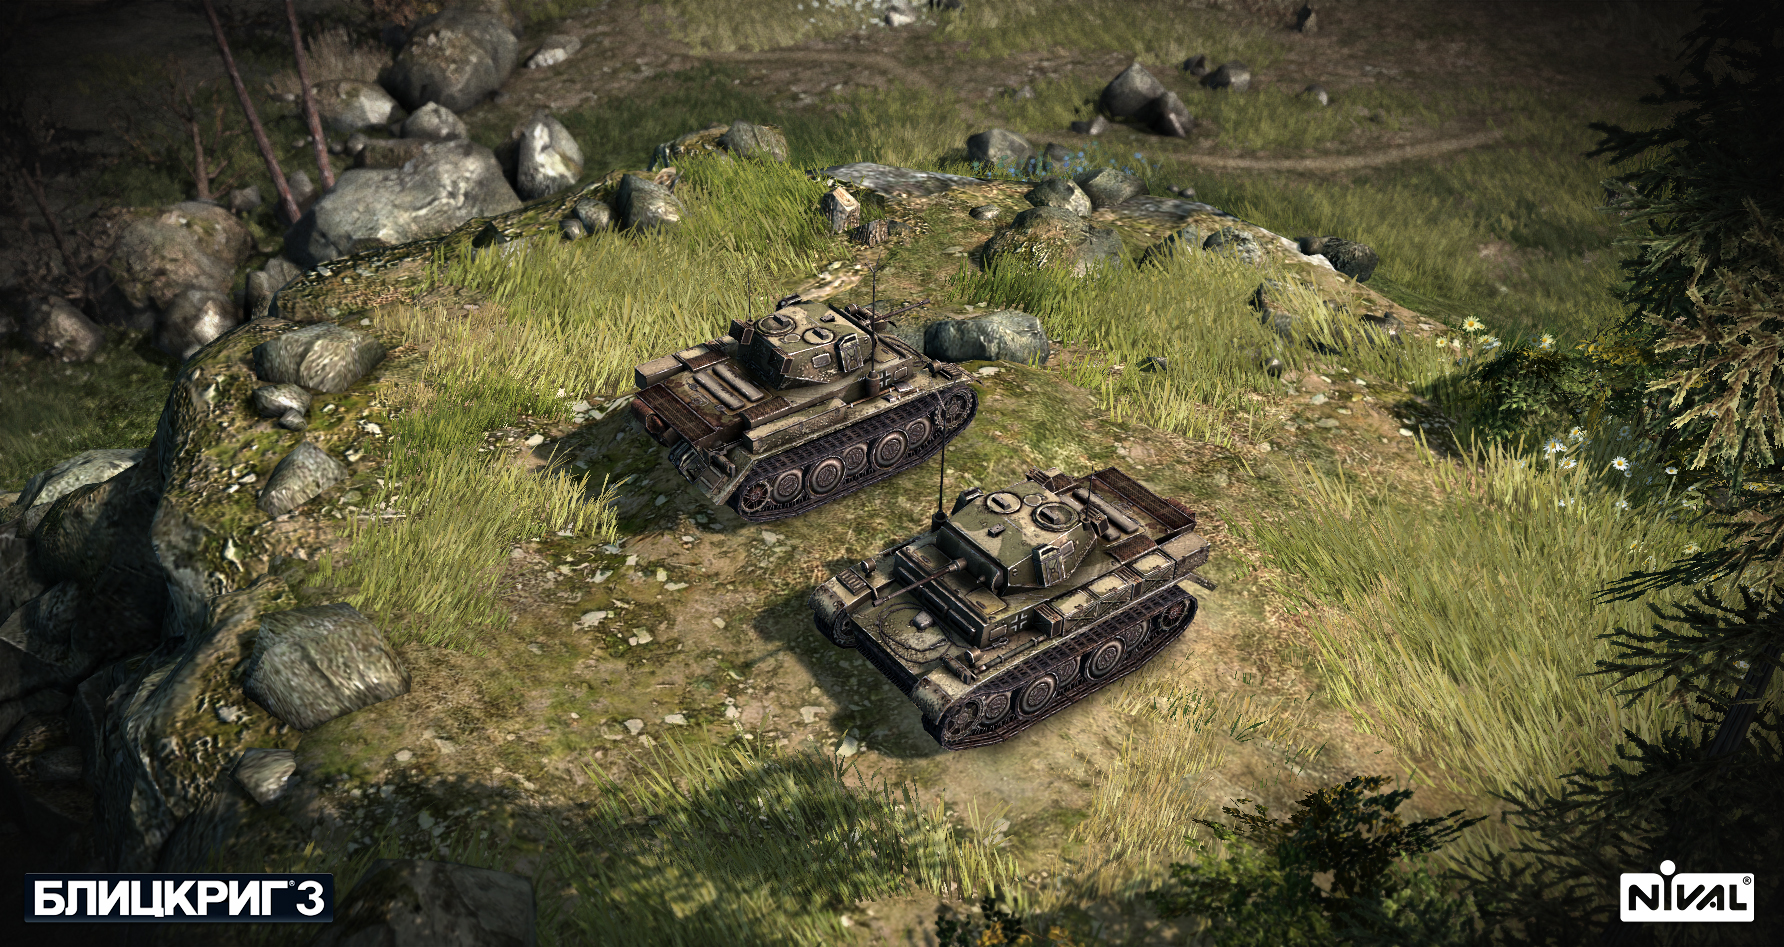 http://www.pictureshack.ru/images/12173_pz2Luchs_camo.jpg